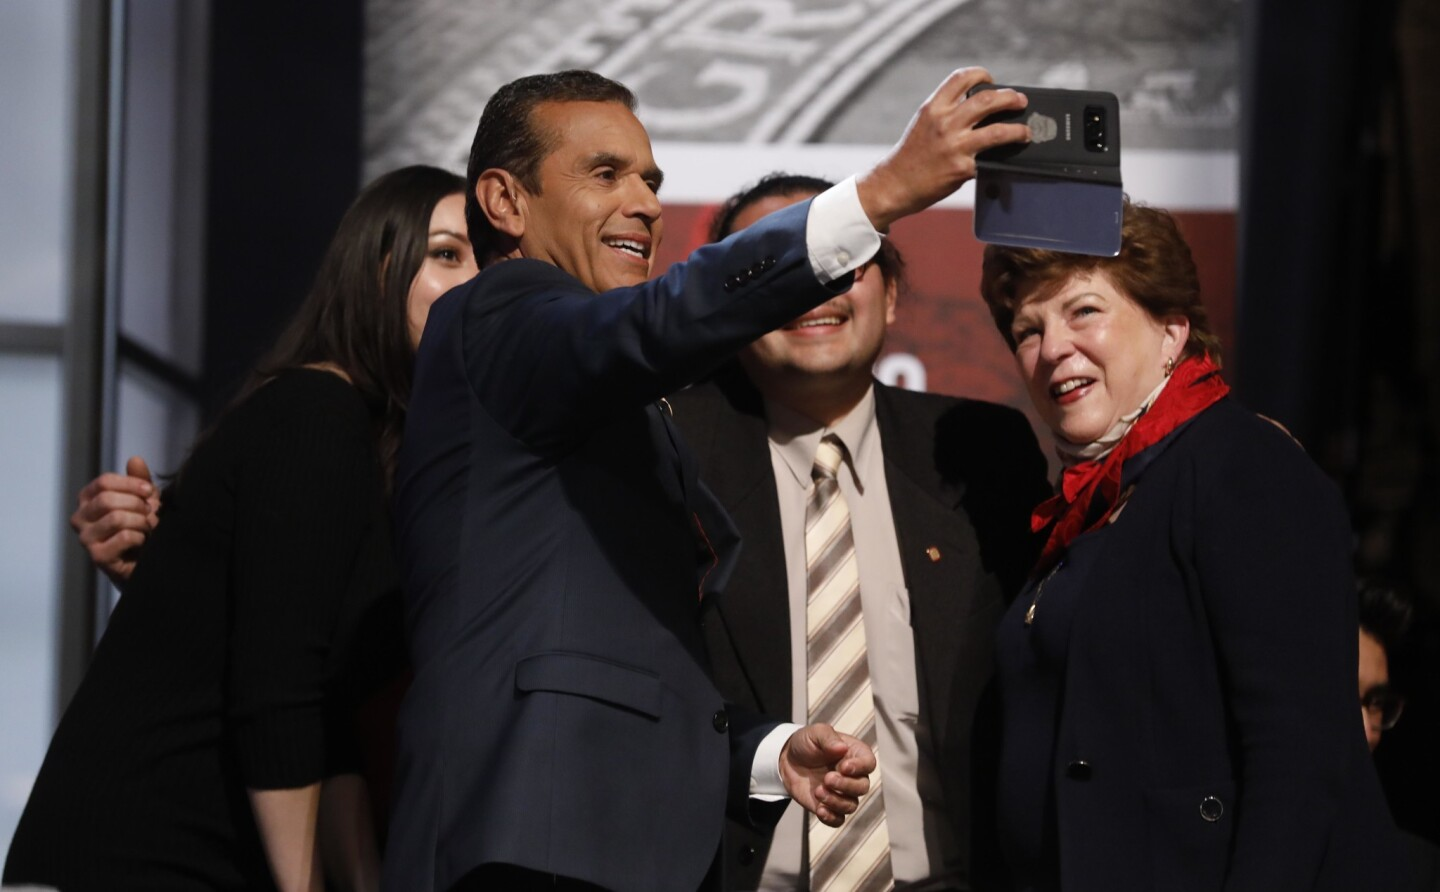 California gubernatorial candidates Antonio Villaraigosa and Delaine Eastin, right, take a picture before the debate at UCLA's Royce Hall.